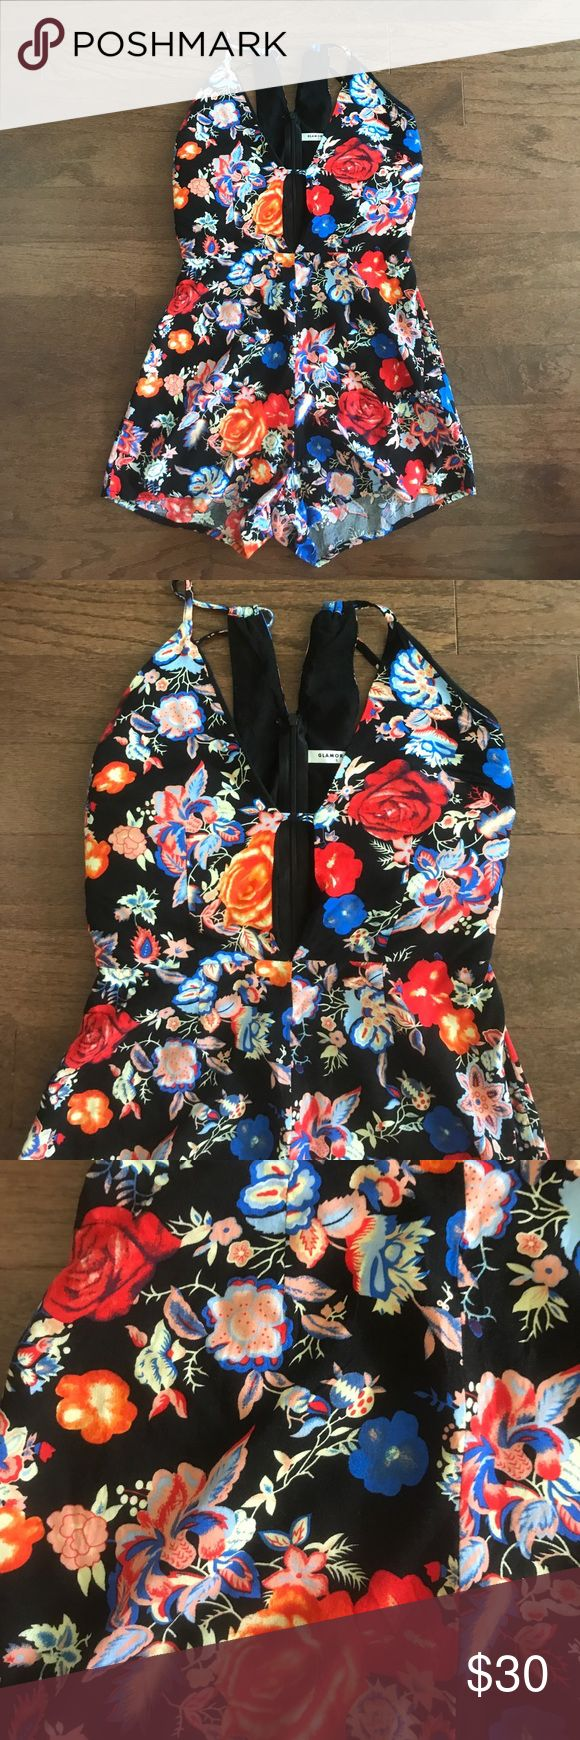 Floral low cut sexy romper Boho chic Floral low cut romper by brand glamorous , so sexy , worn and washed once , so hot; first pic is a stock photo showing what the romper looks like on , the print is the 2nd photo ............. ..........................................Tags:  tigermist tiger mist urban outfitters free people anthropologie  asos missguided nasty gal hello molly selfie leslie xenia boutique boohoo Windsor  Free People Dresses